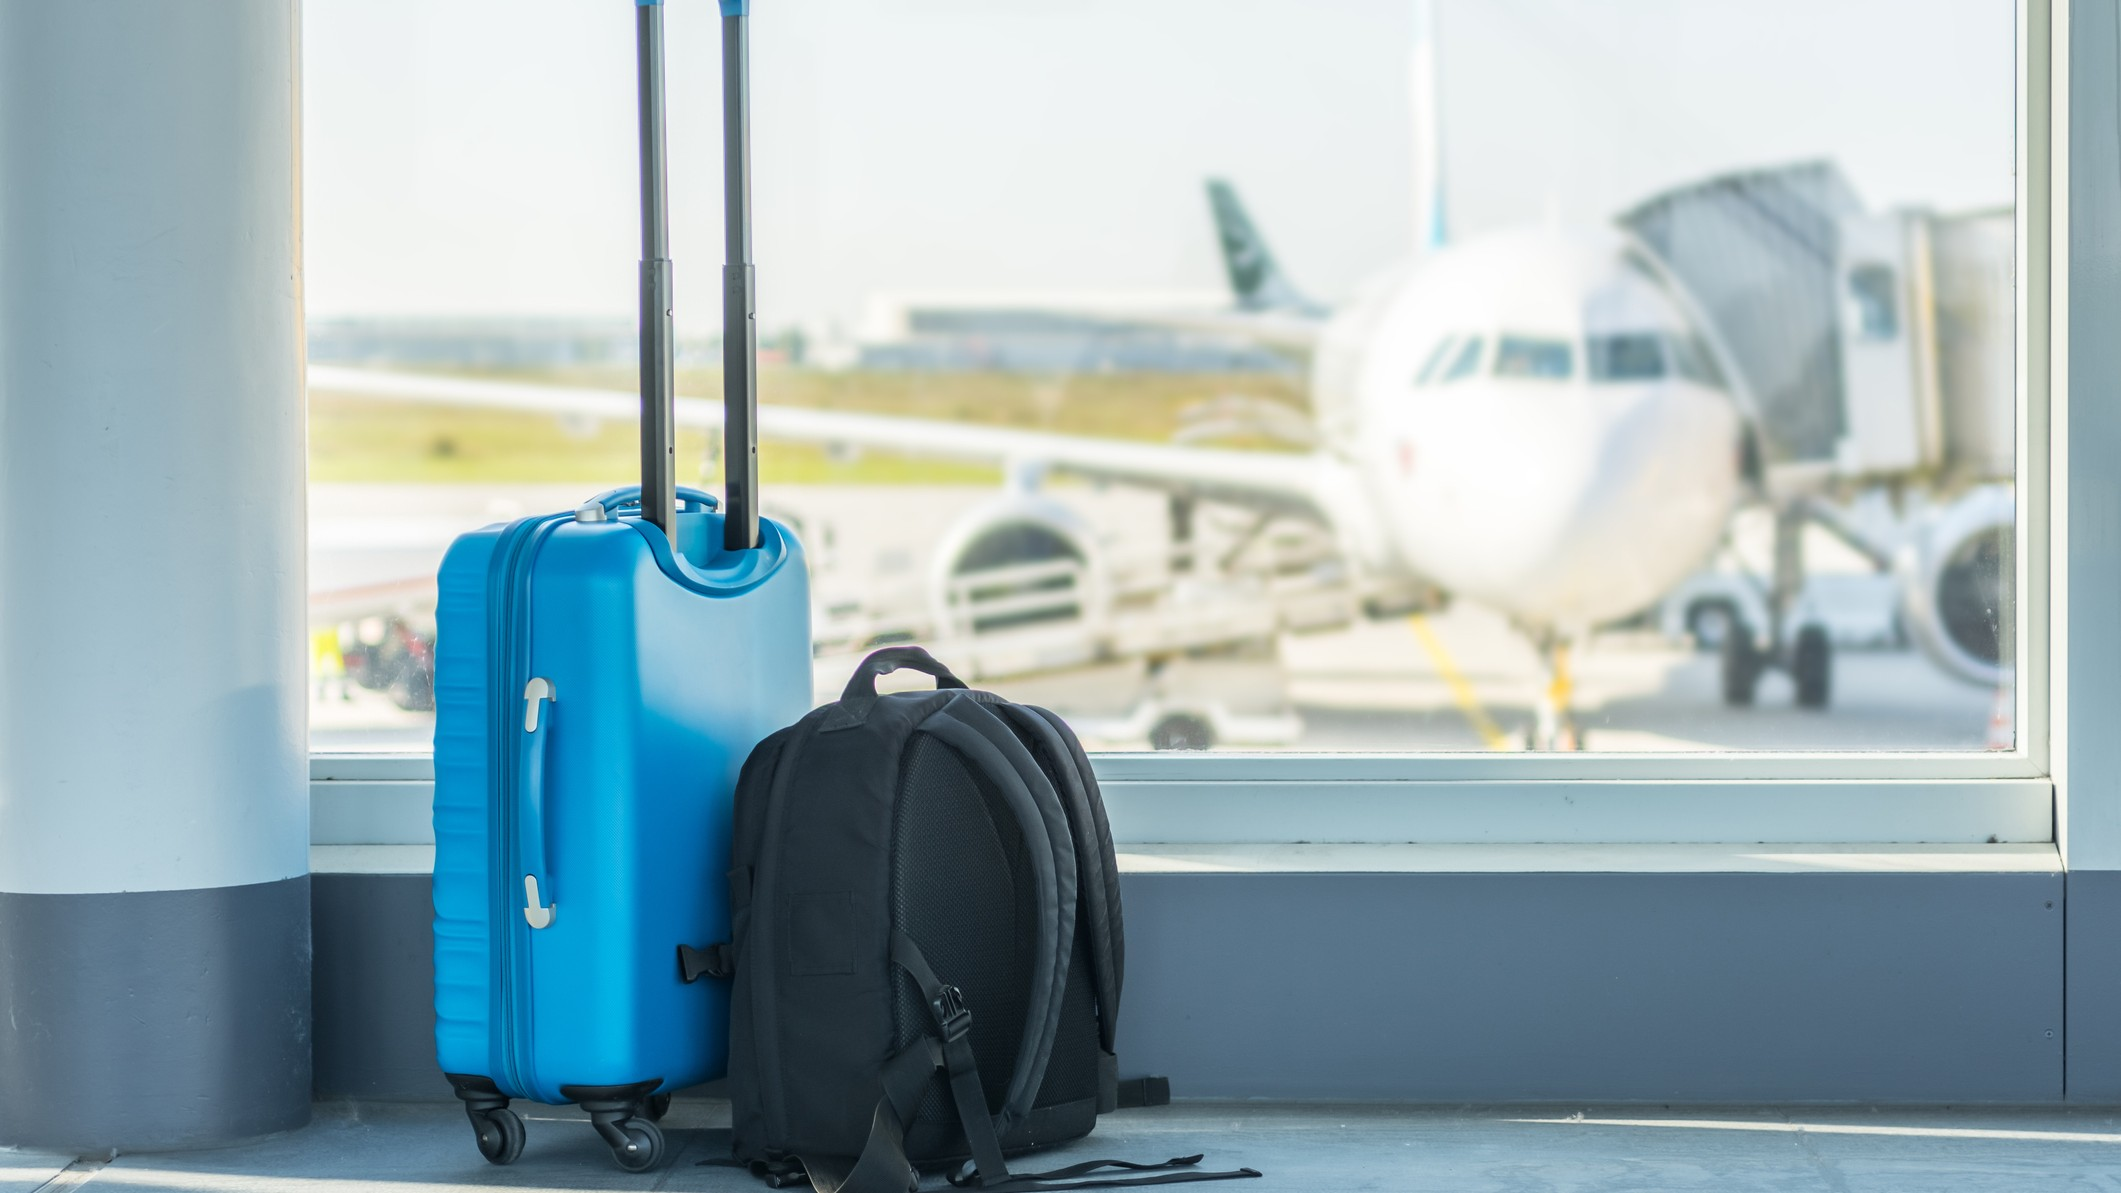 Travel bags sit by an airport lounge window overlooking a grounded plane on the tarmac